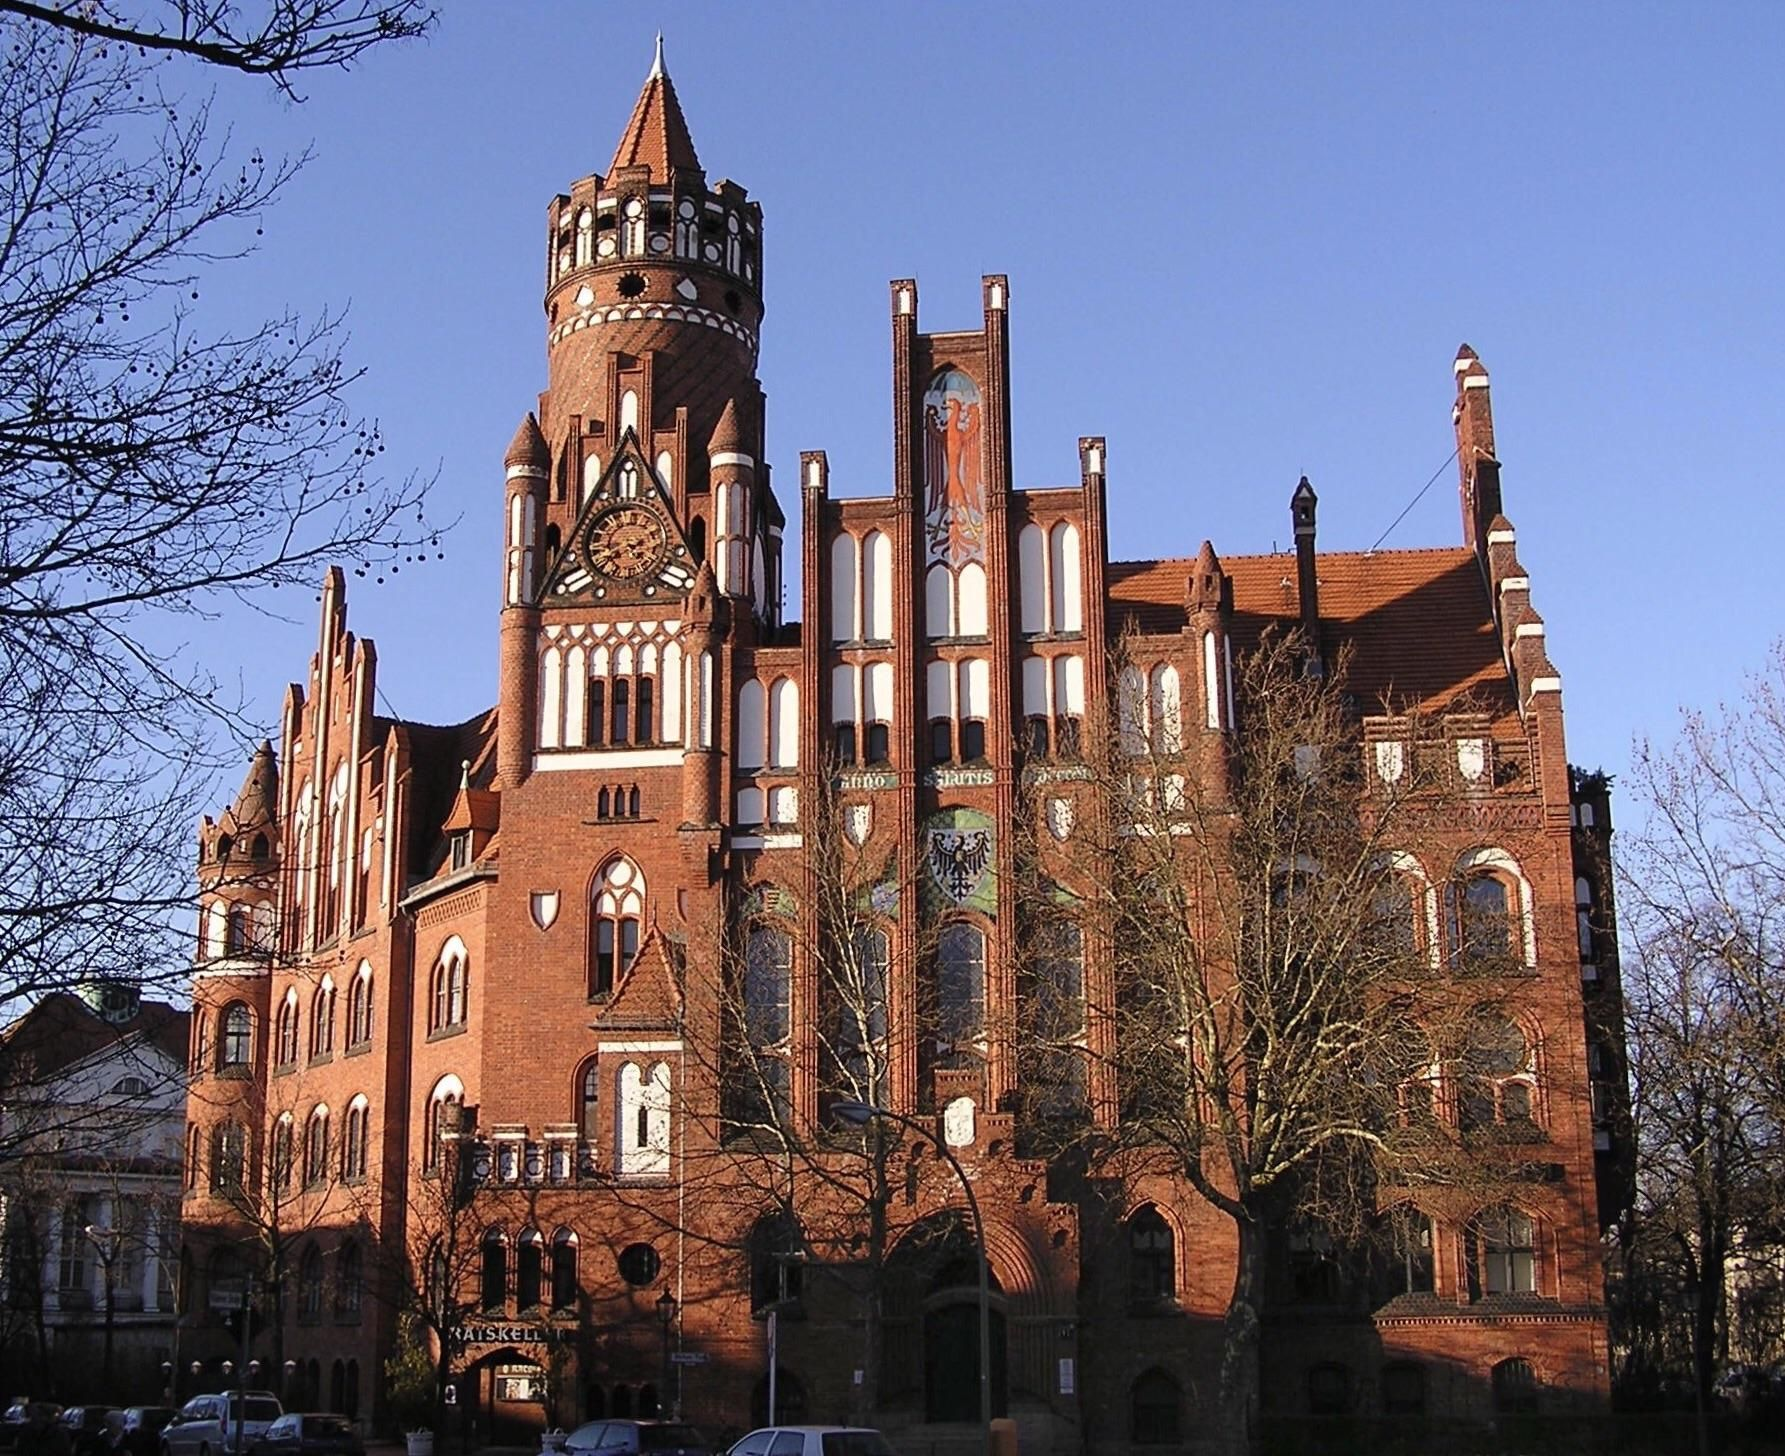 Berlin Gothic The Brick Gothic Revival Town Hall Of Schmargendorf In Berlin